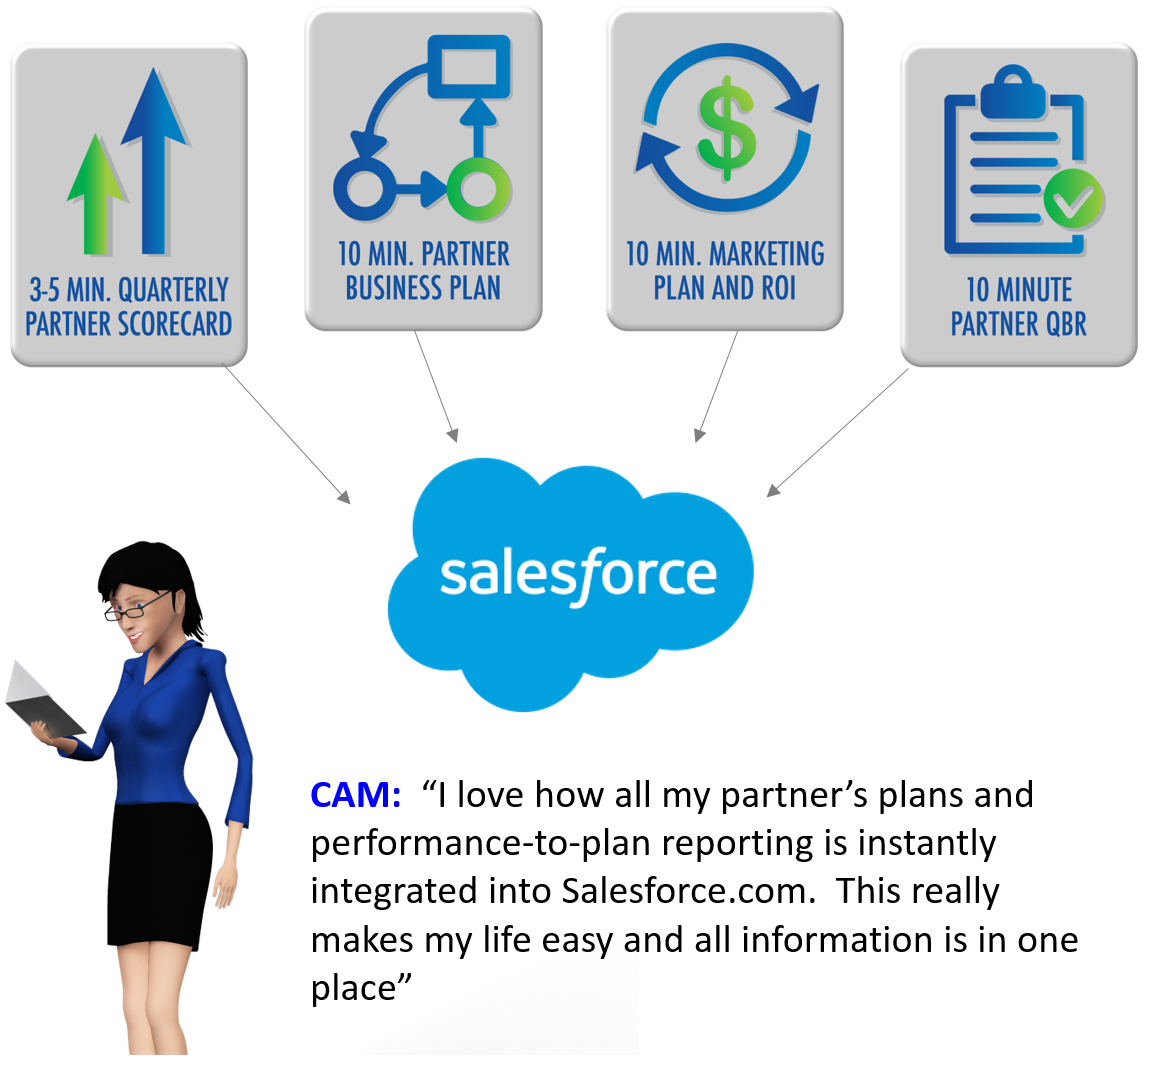 SalesForce integration